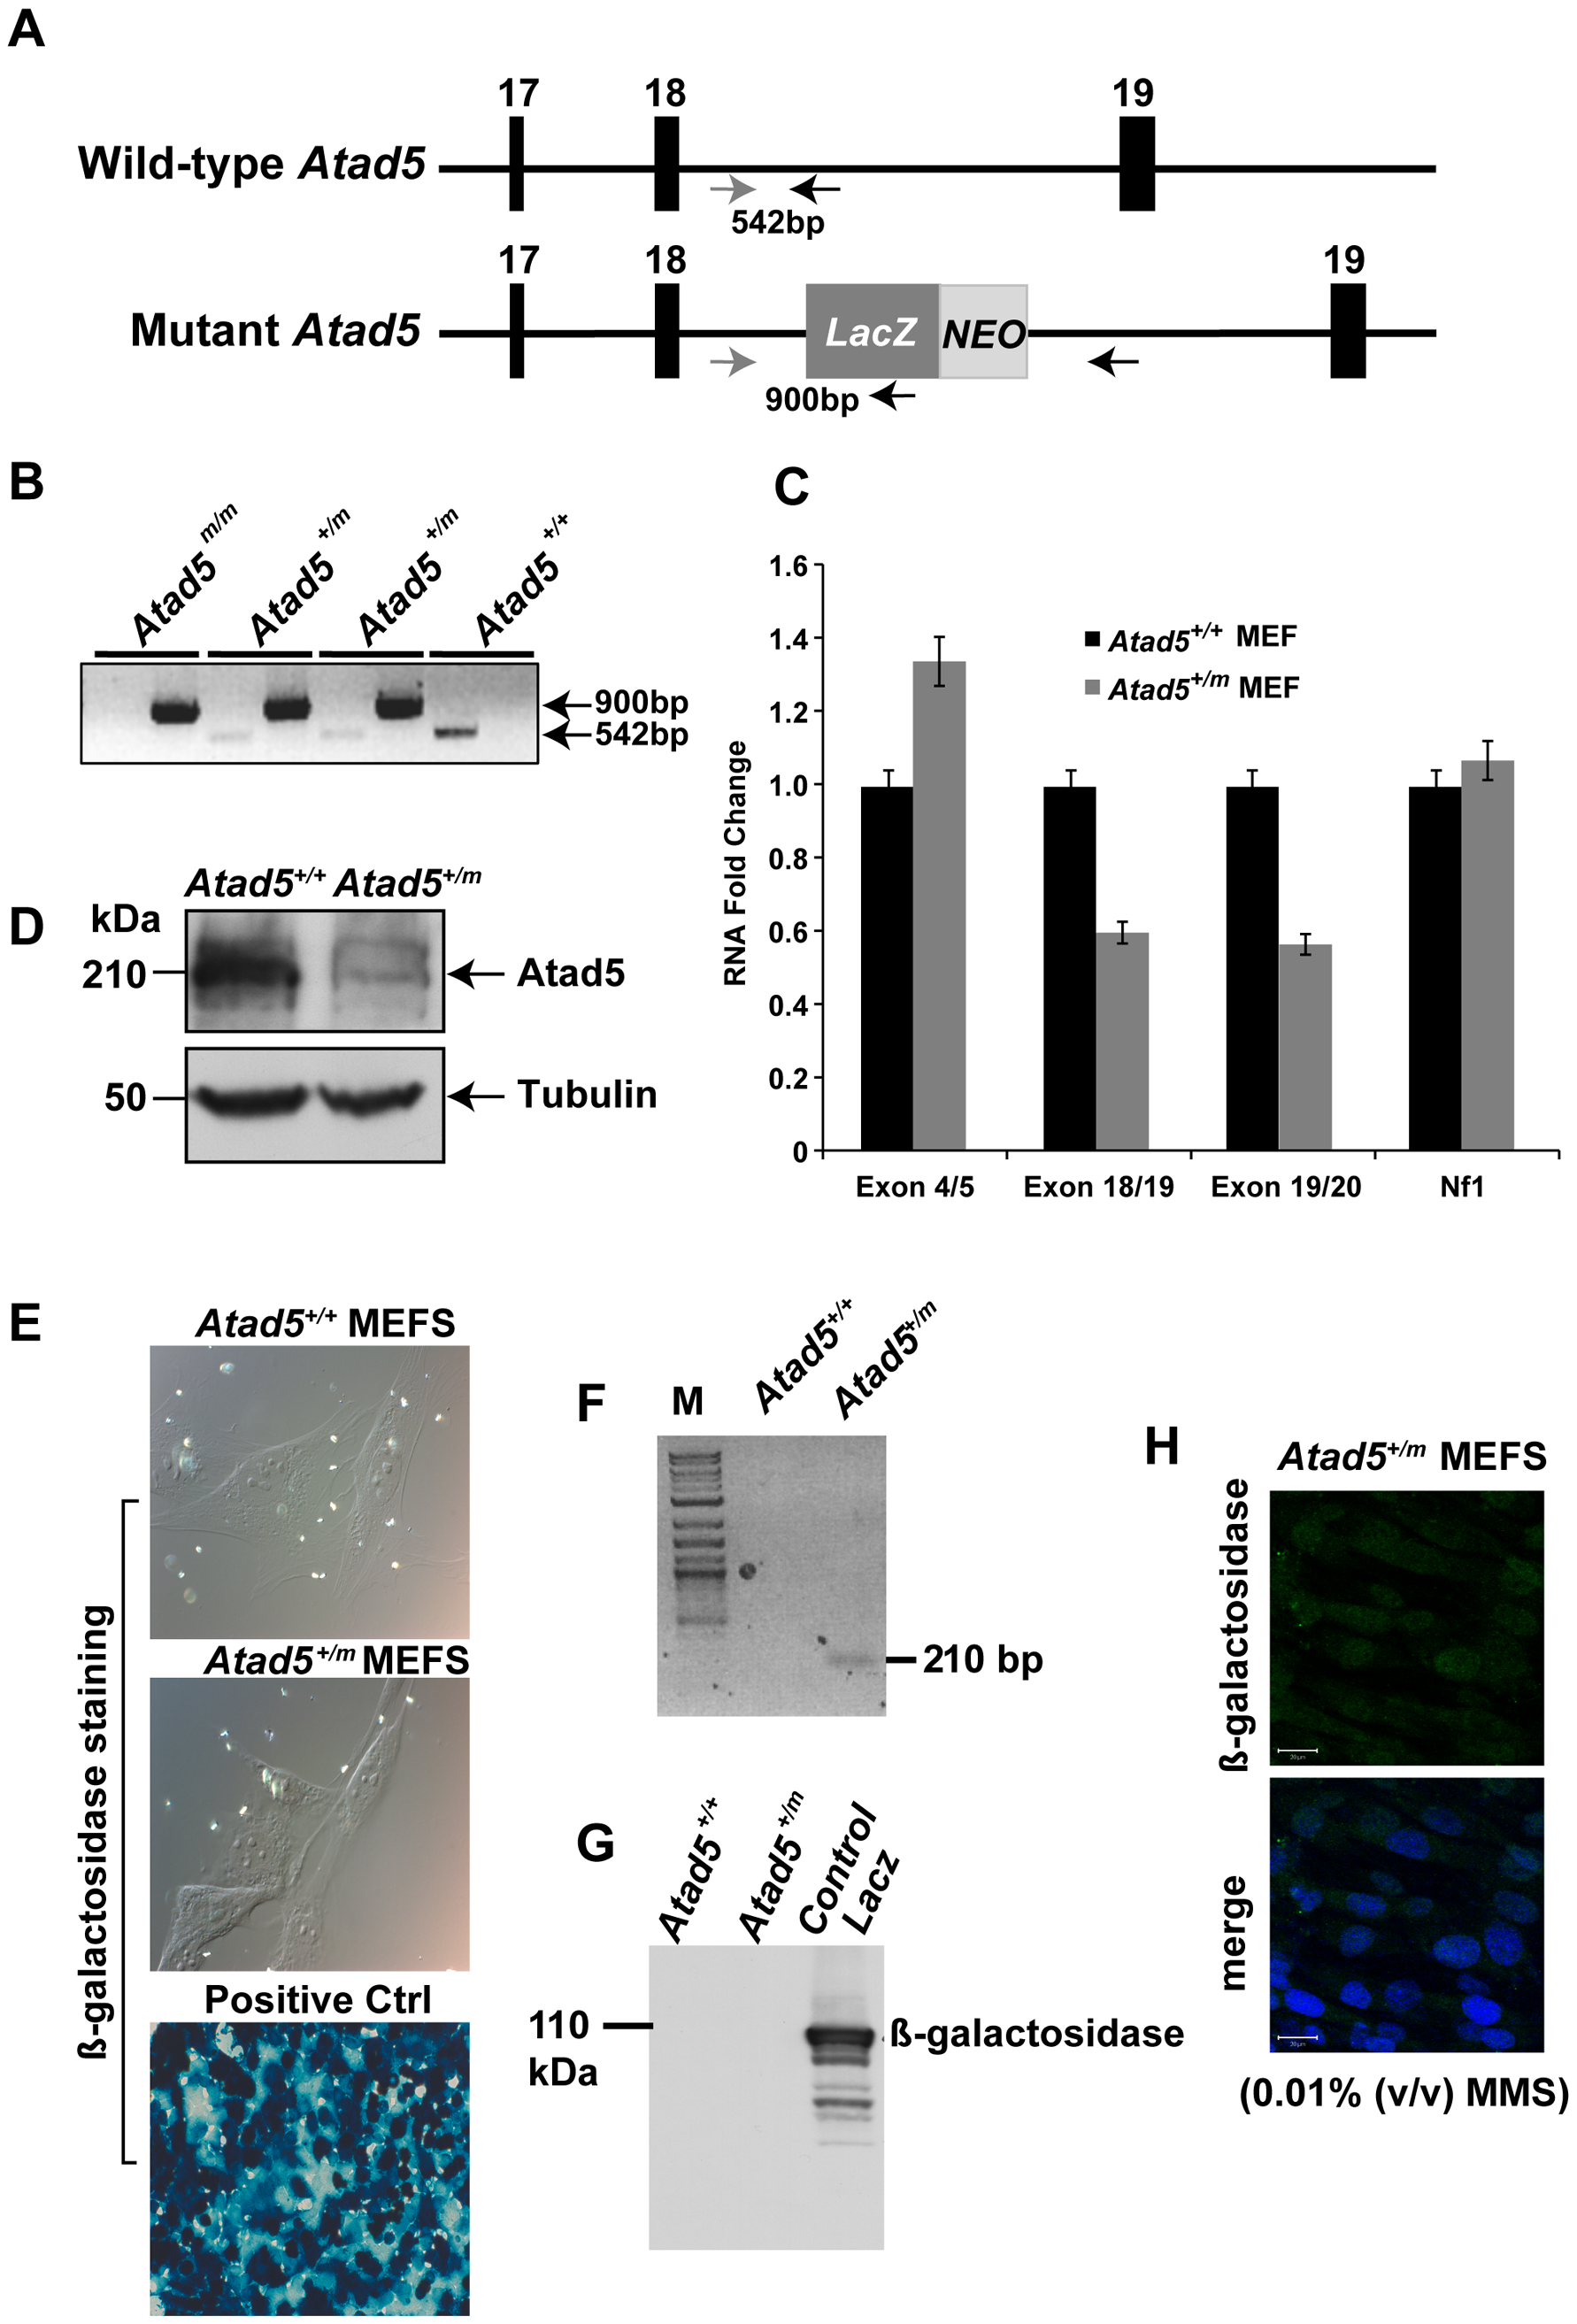 Disruption of the mouse Atad5 gene by insertional mutagenesis.